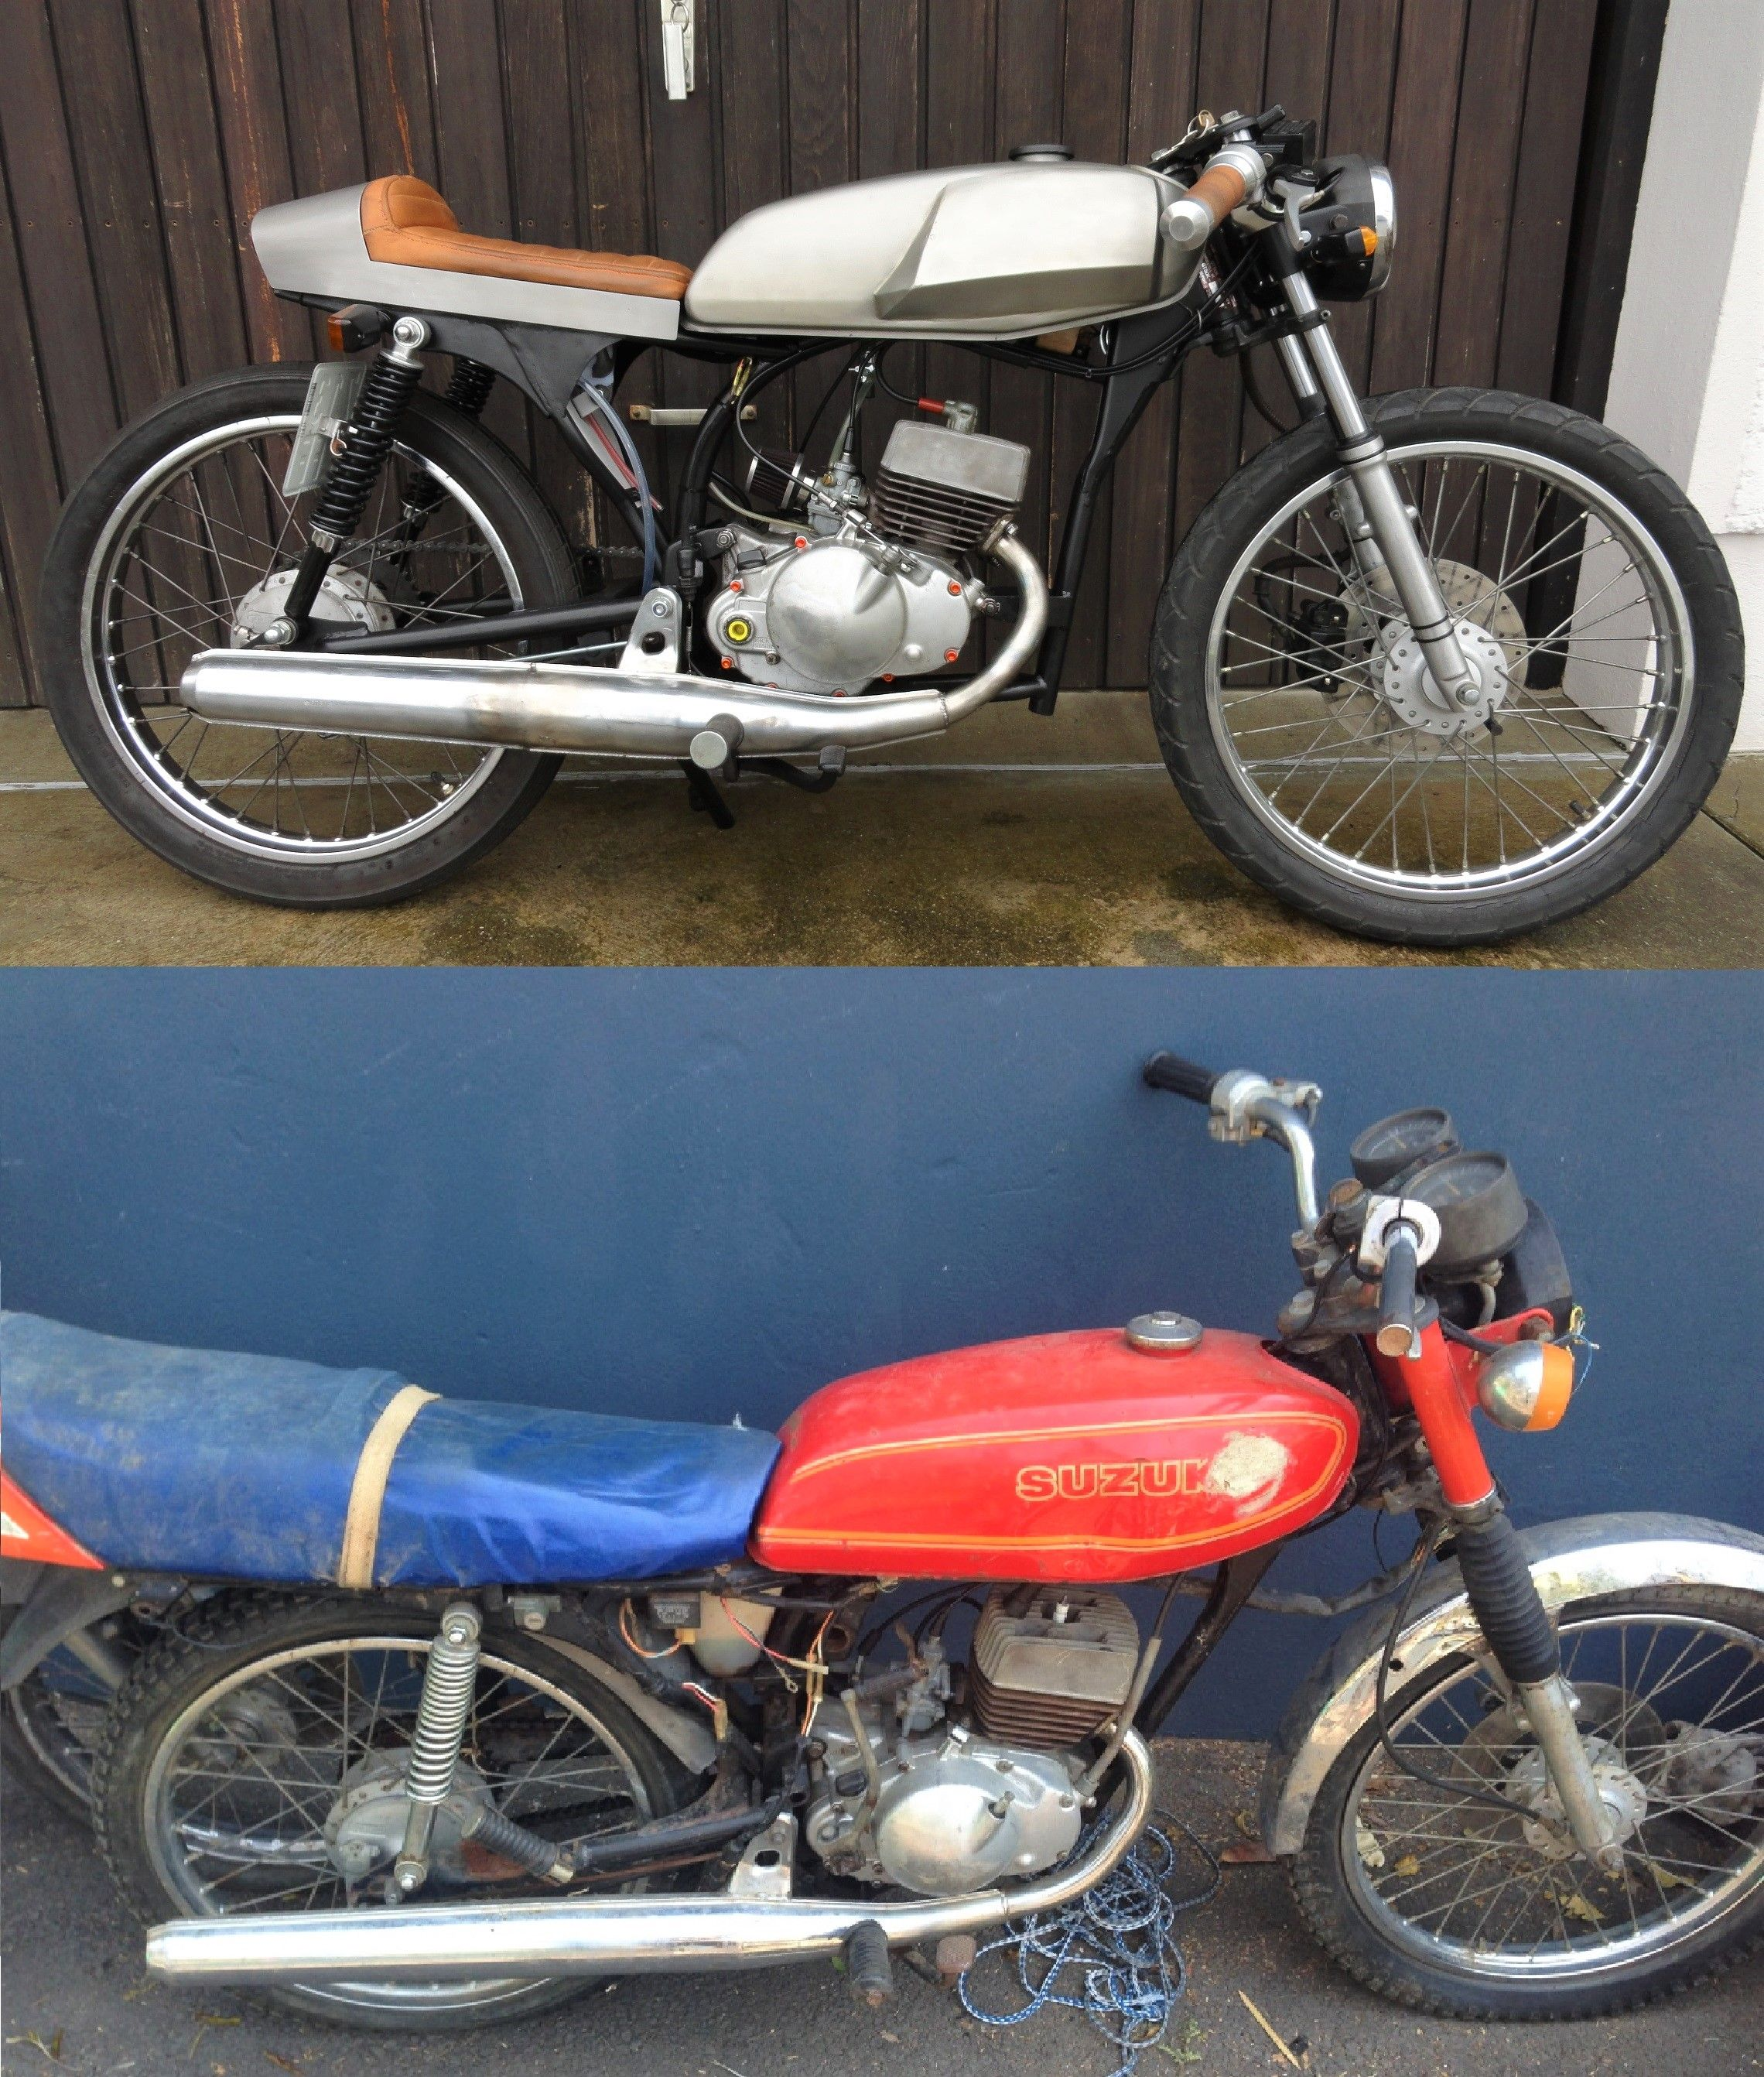 - Cafe Racer Vorher Nachher   - Suzuki GT50K Umbau #beforeandafter #before&after #instamoto #builtnotbought #stocksucks #ride #bike #custom #caferacer #kustom